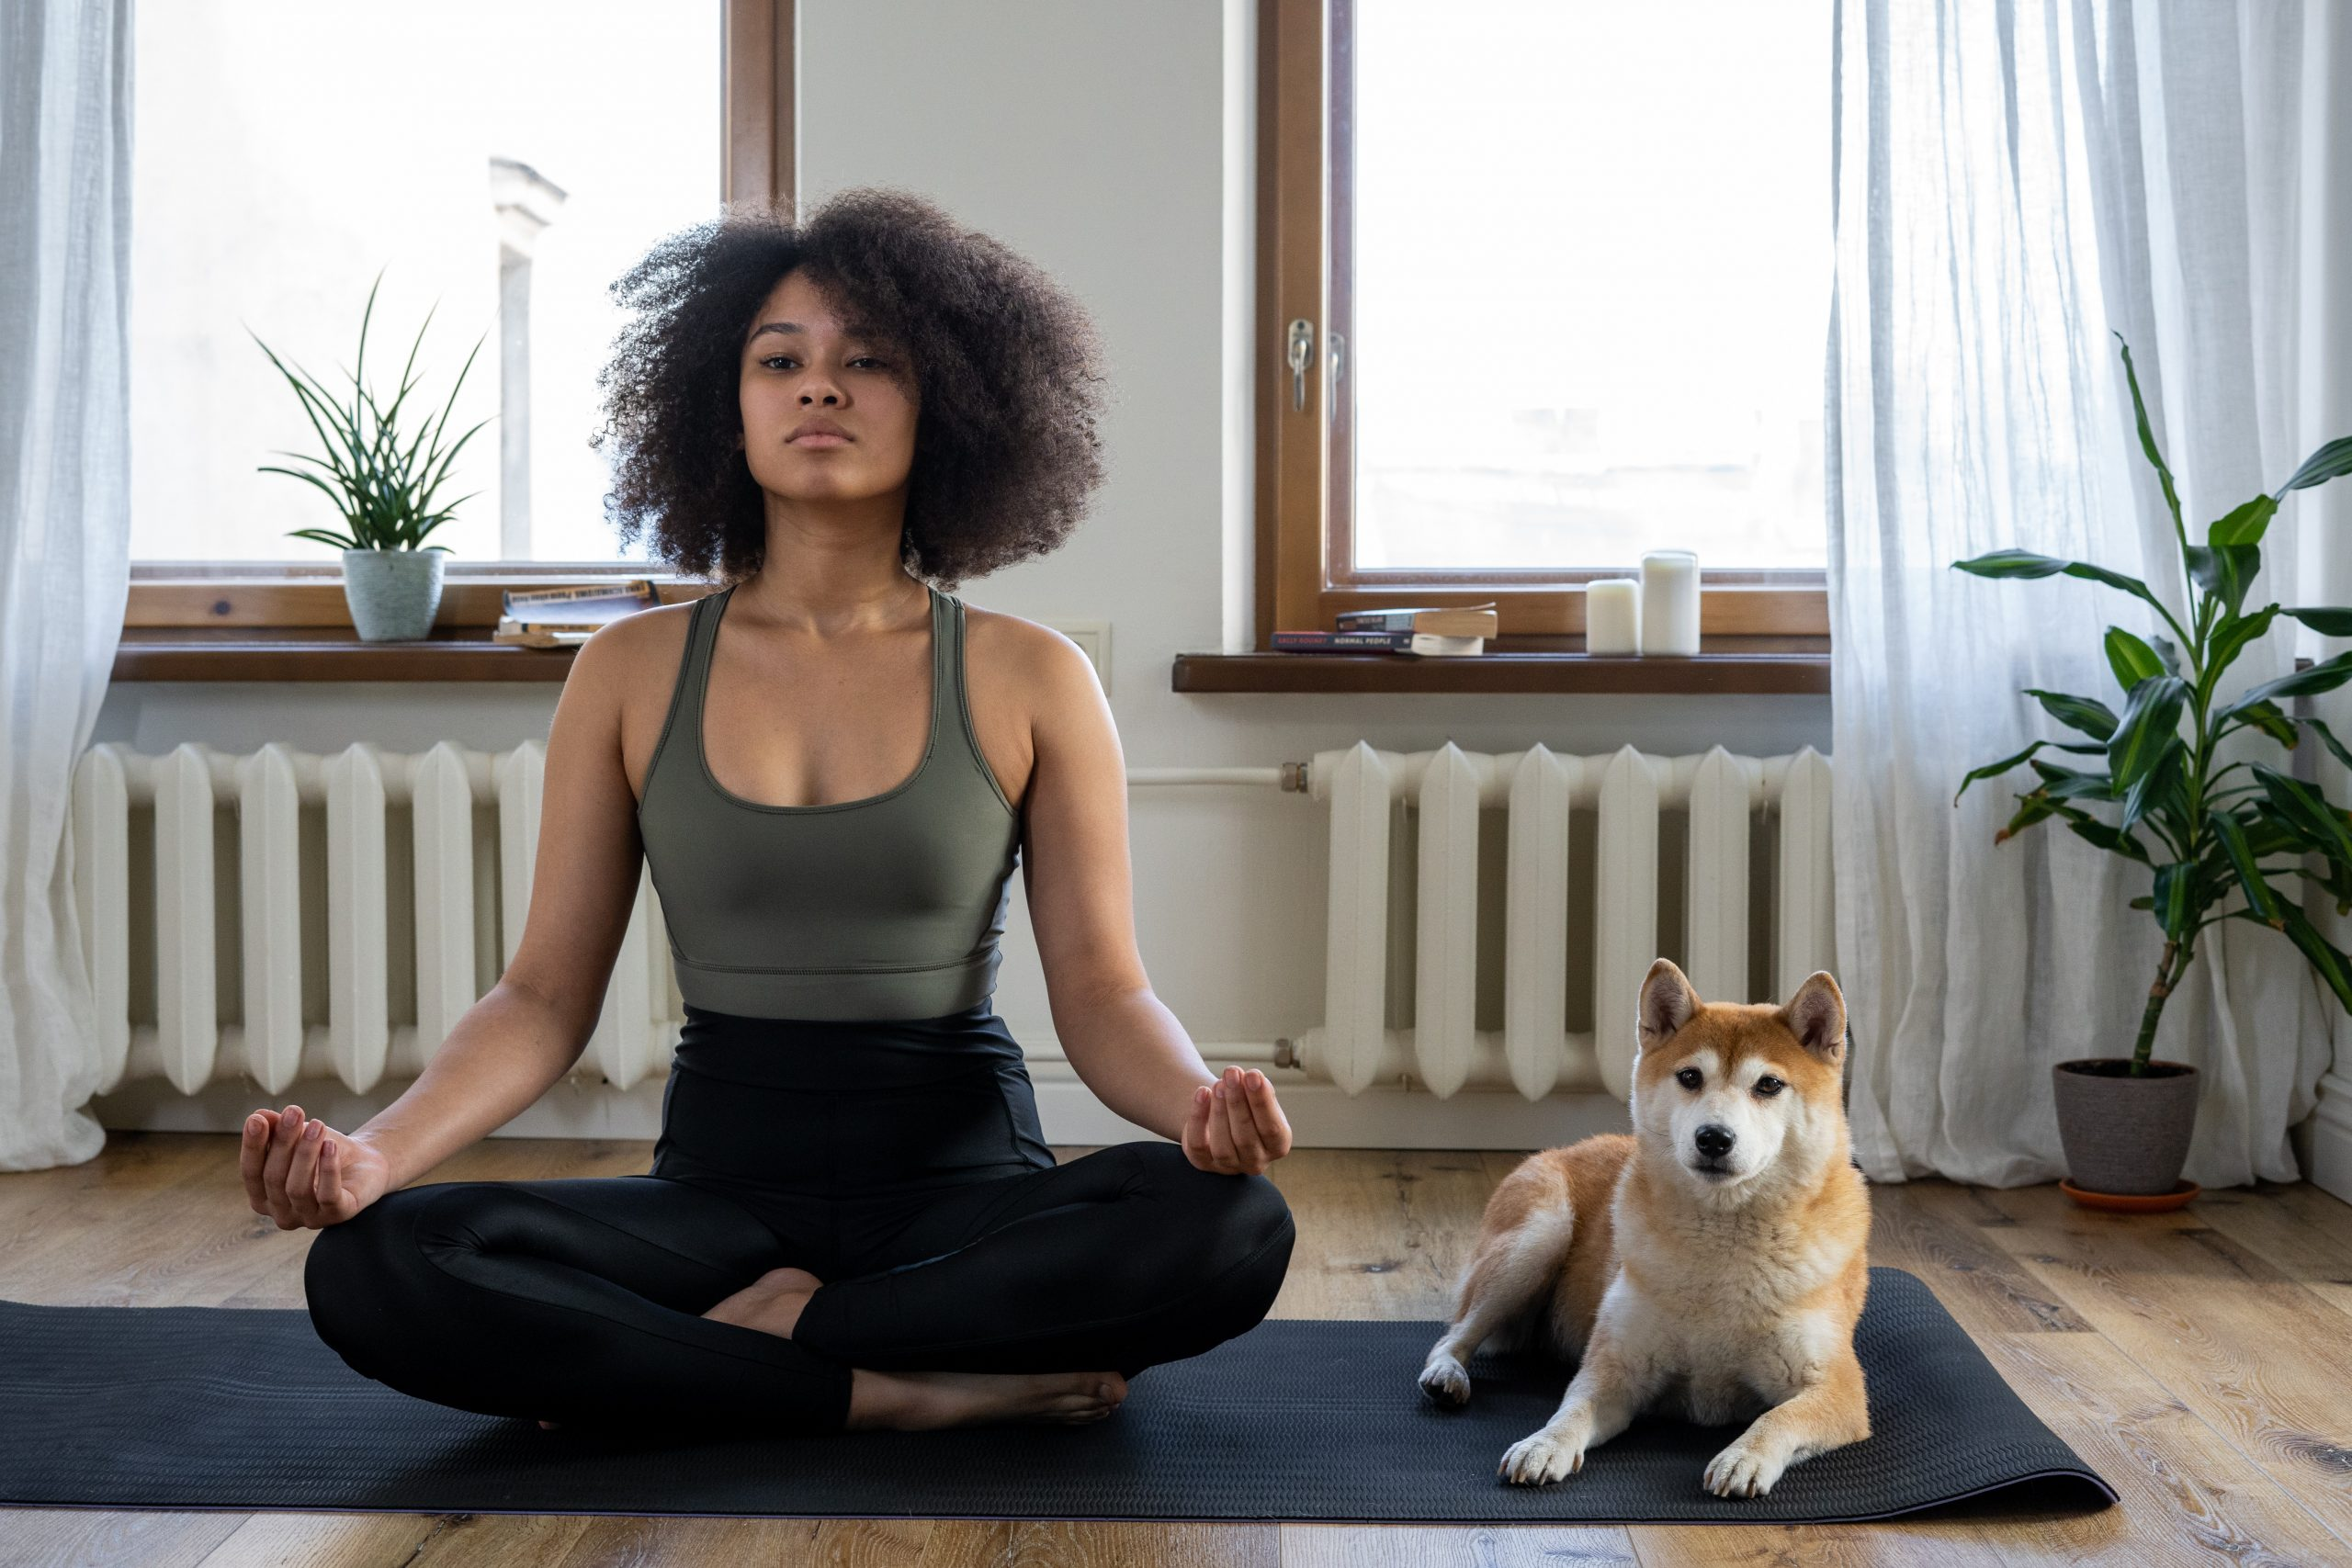 Woman meditating with dog in house